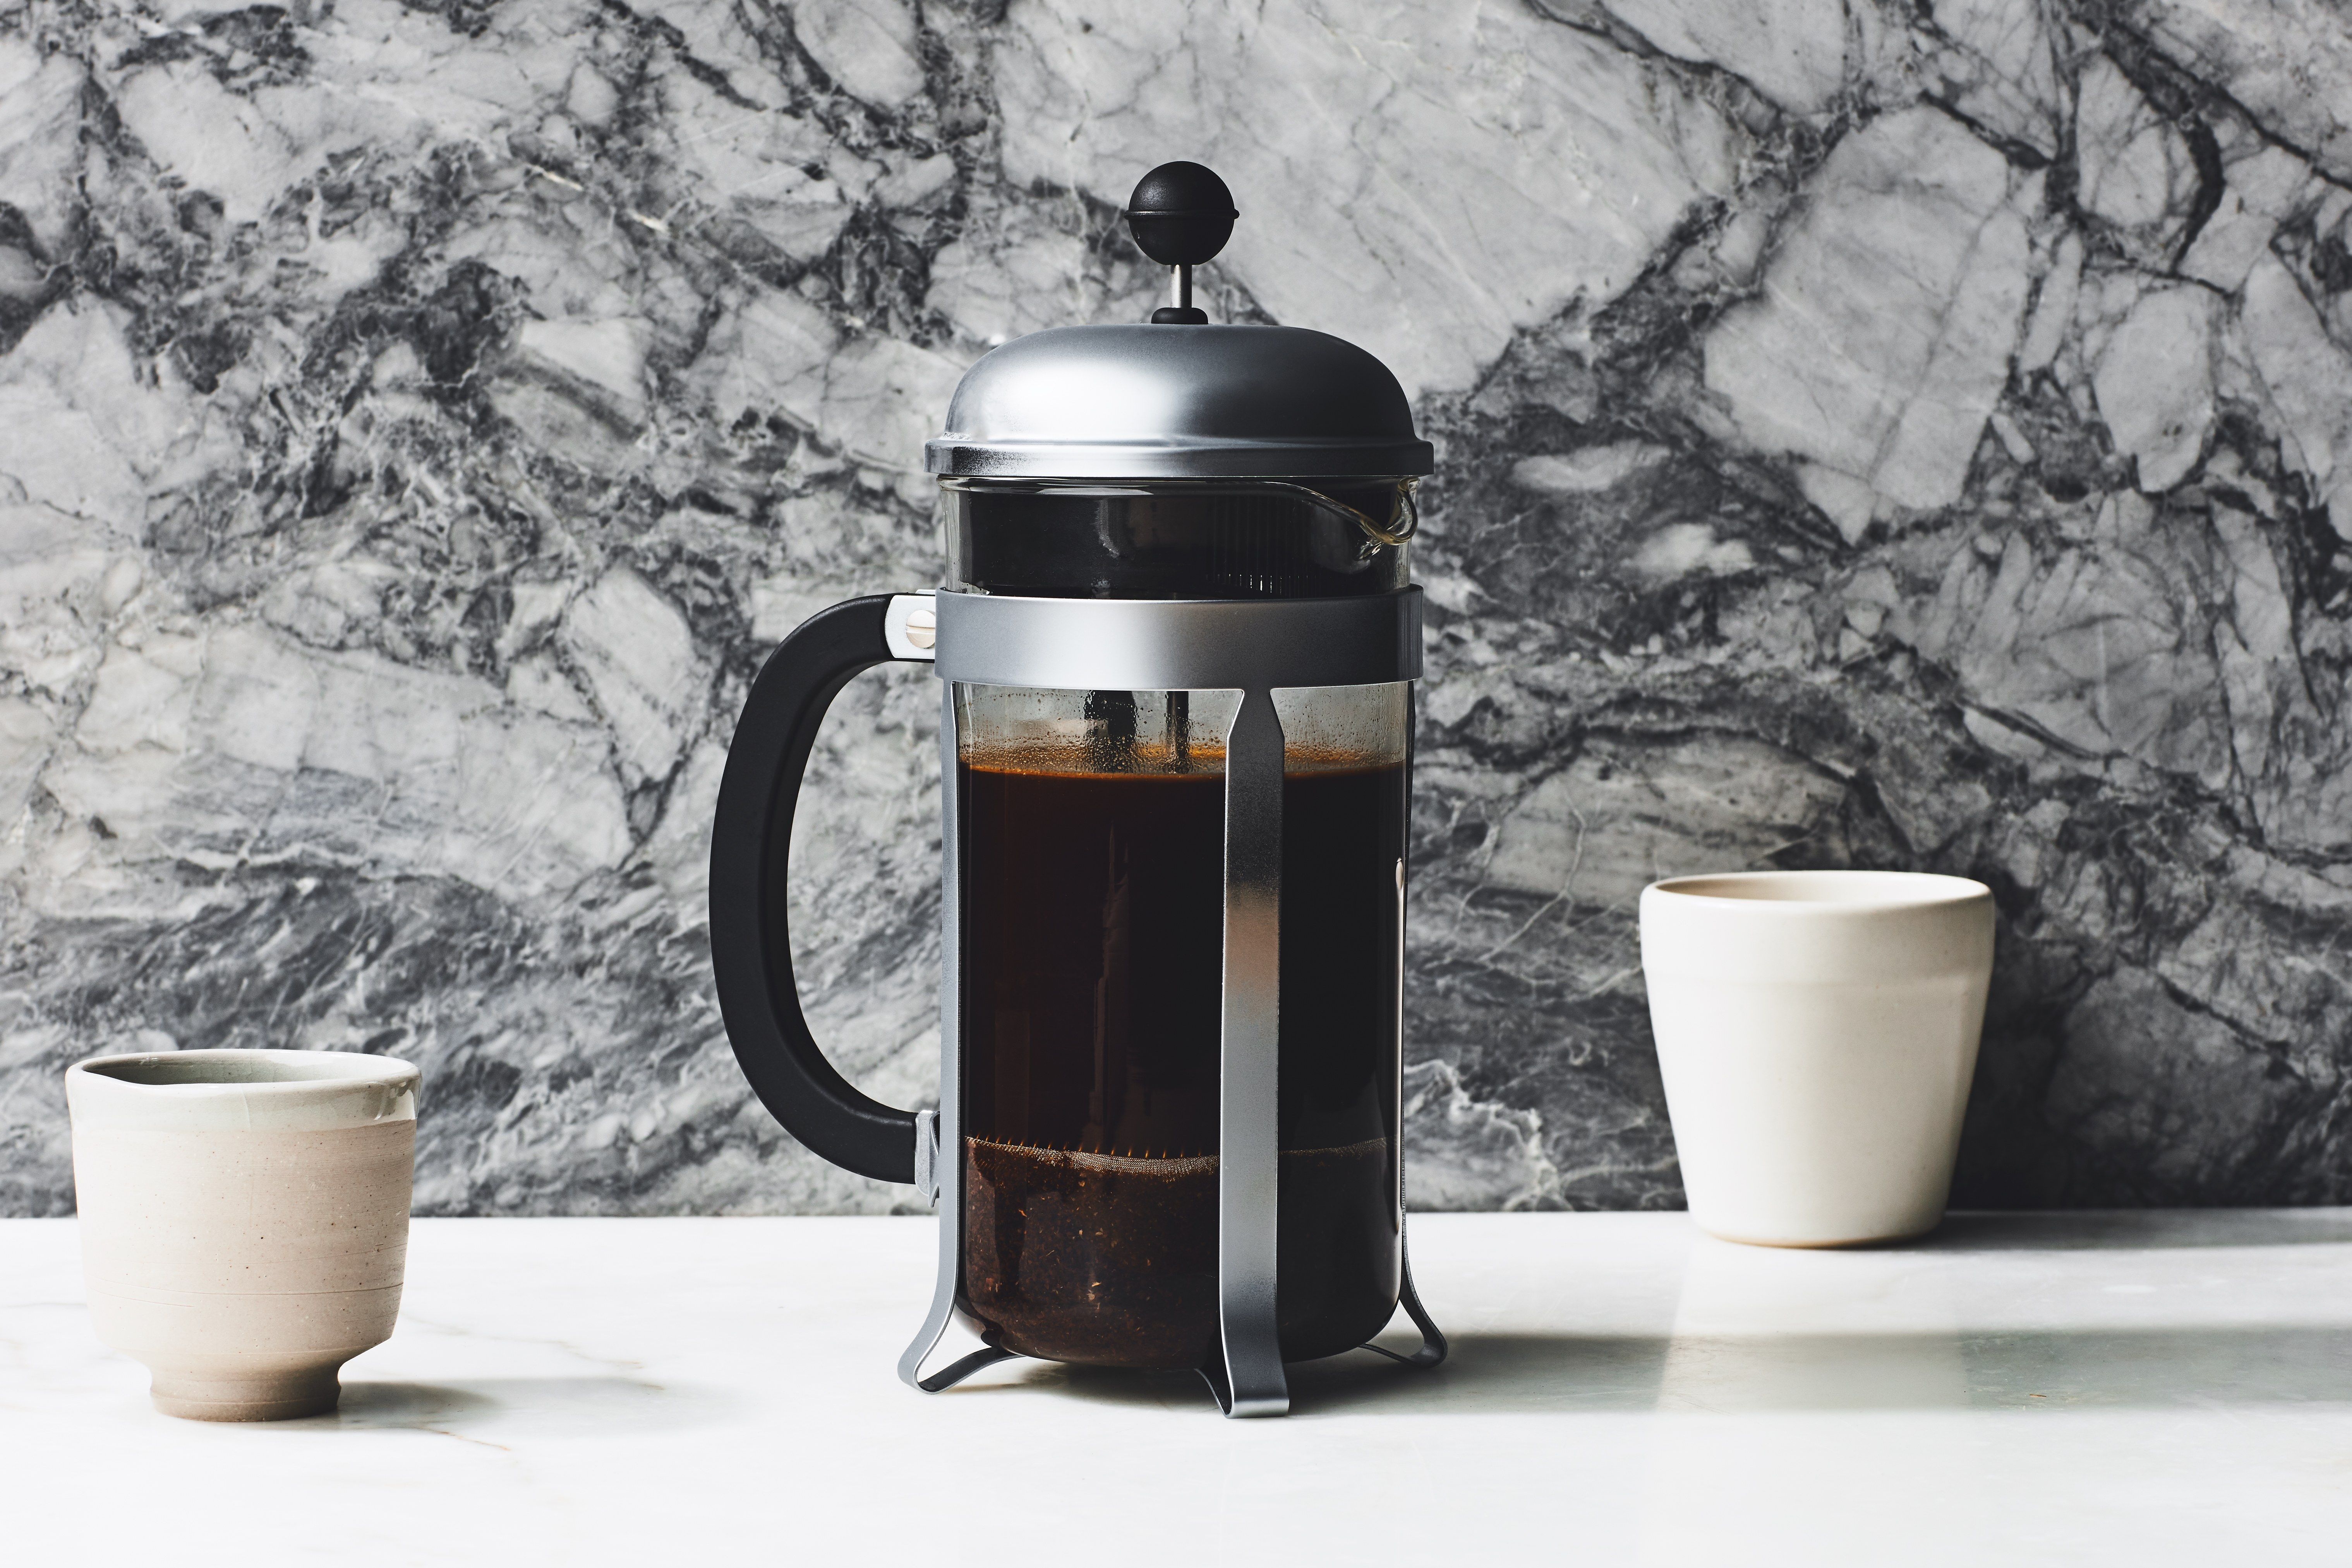 These Are the Best French Presses (With images) French